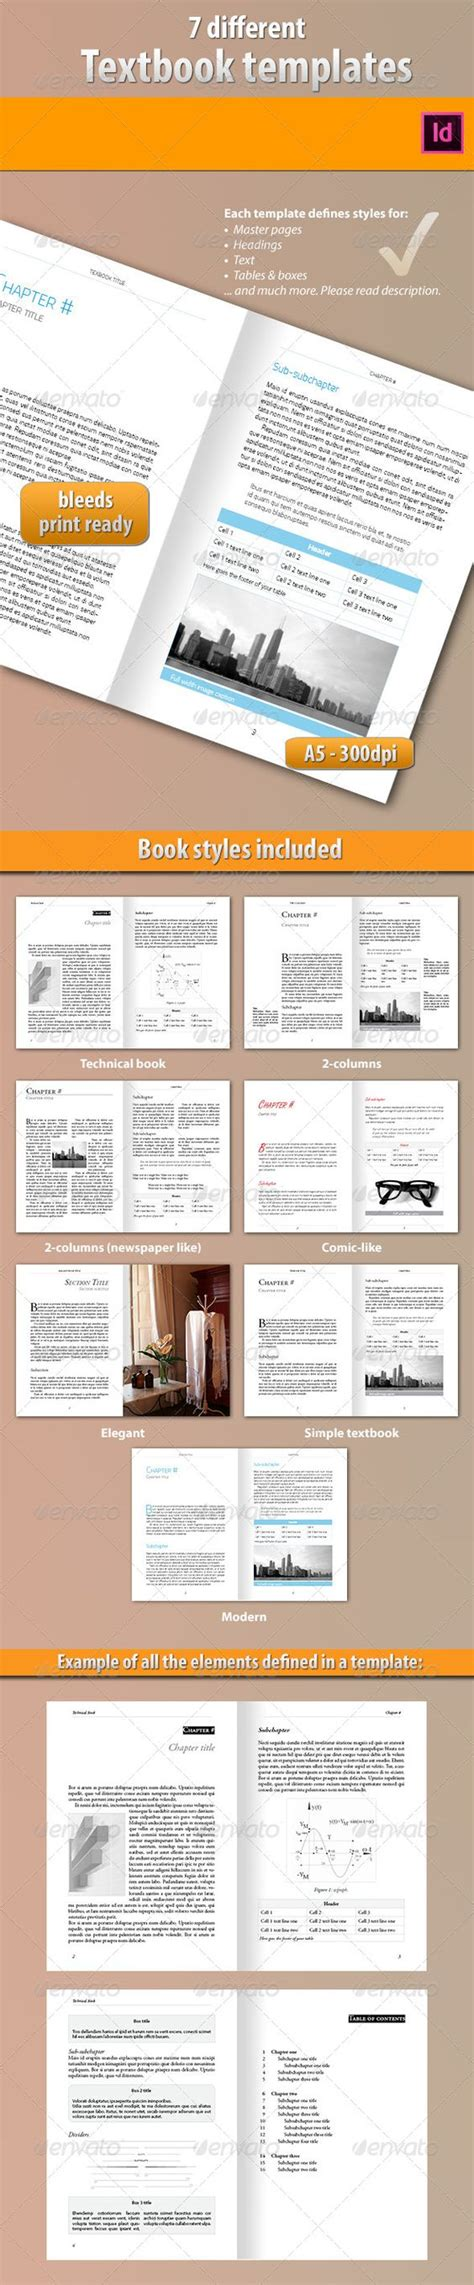 7 ebook templates a well texts and style